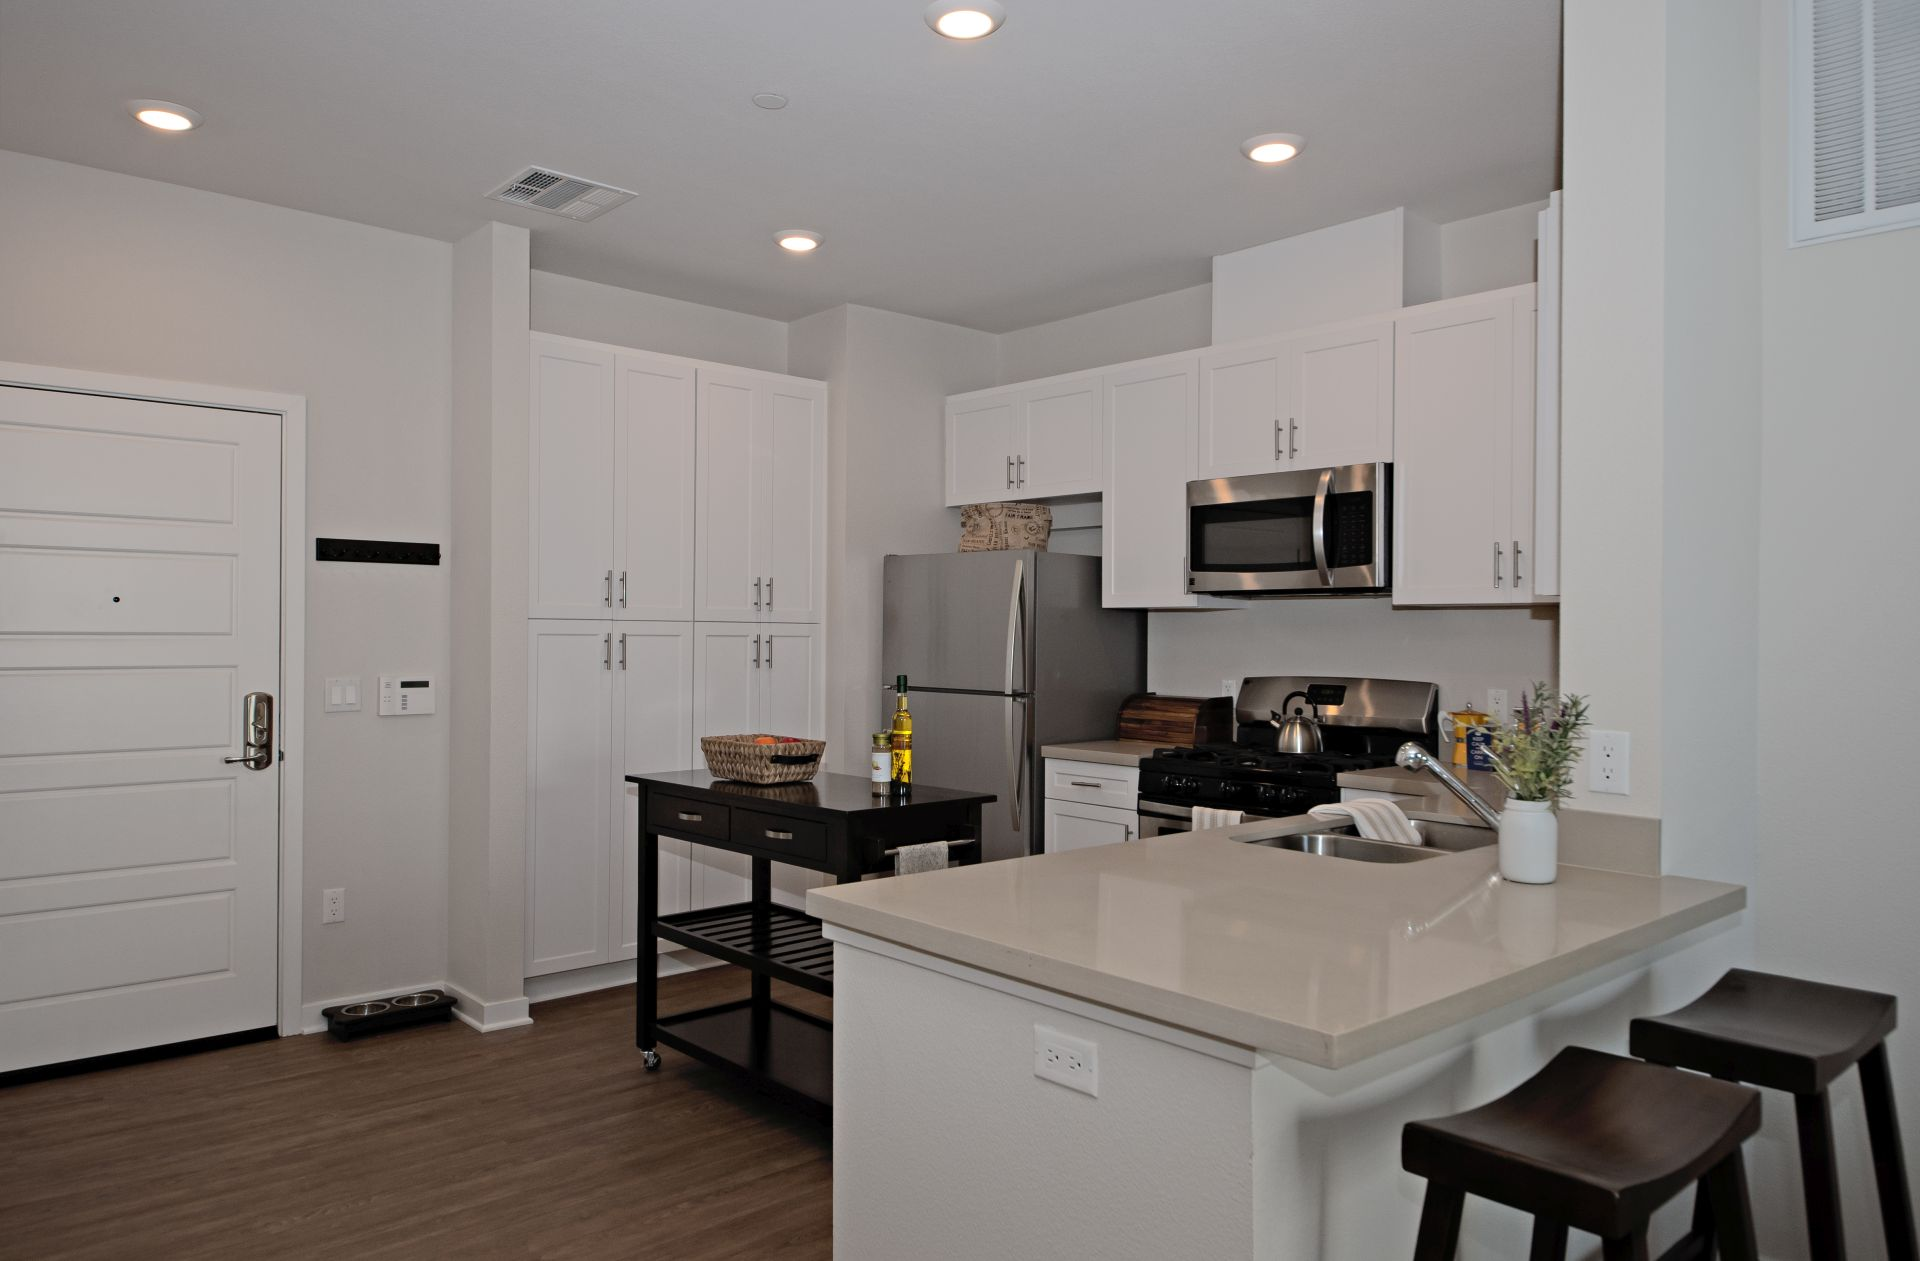 IMT Sherman Circle - BRAND NEW PHASE 2 NOW OPEN!Featuring Two and Three Bedroom Apartments and Townhomes Leasing Office:  14645 Gault St